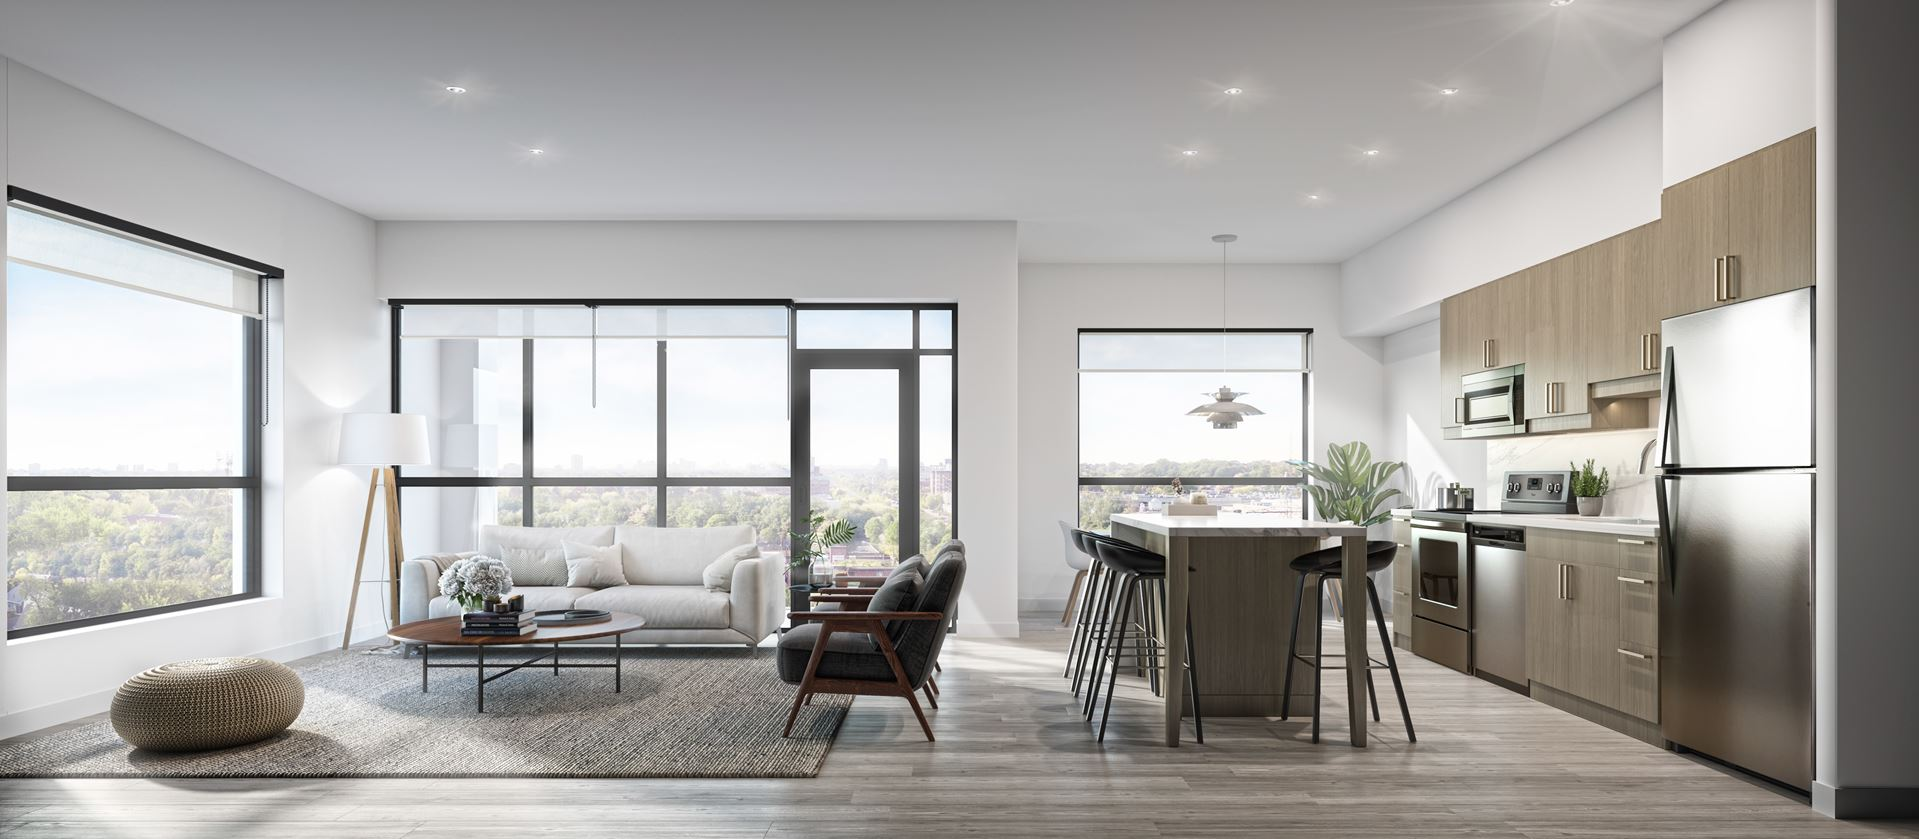 Rendering of Elevate Condos suite interior living and kitchen open-concept.